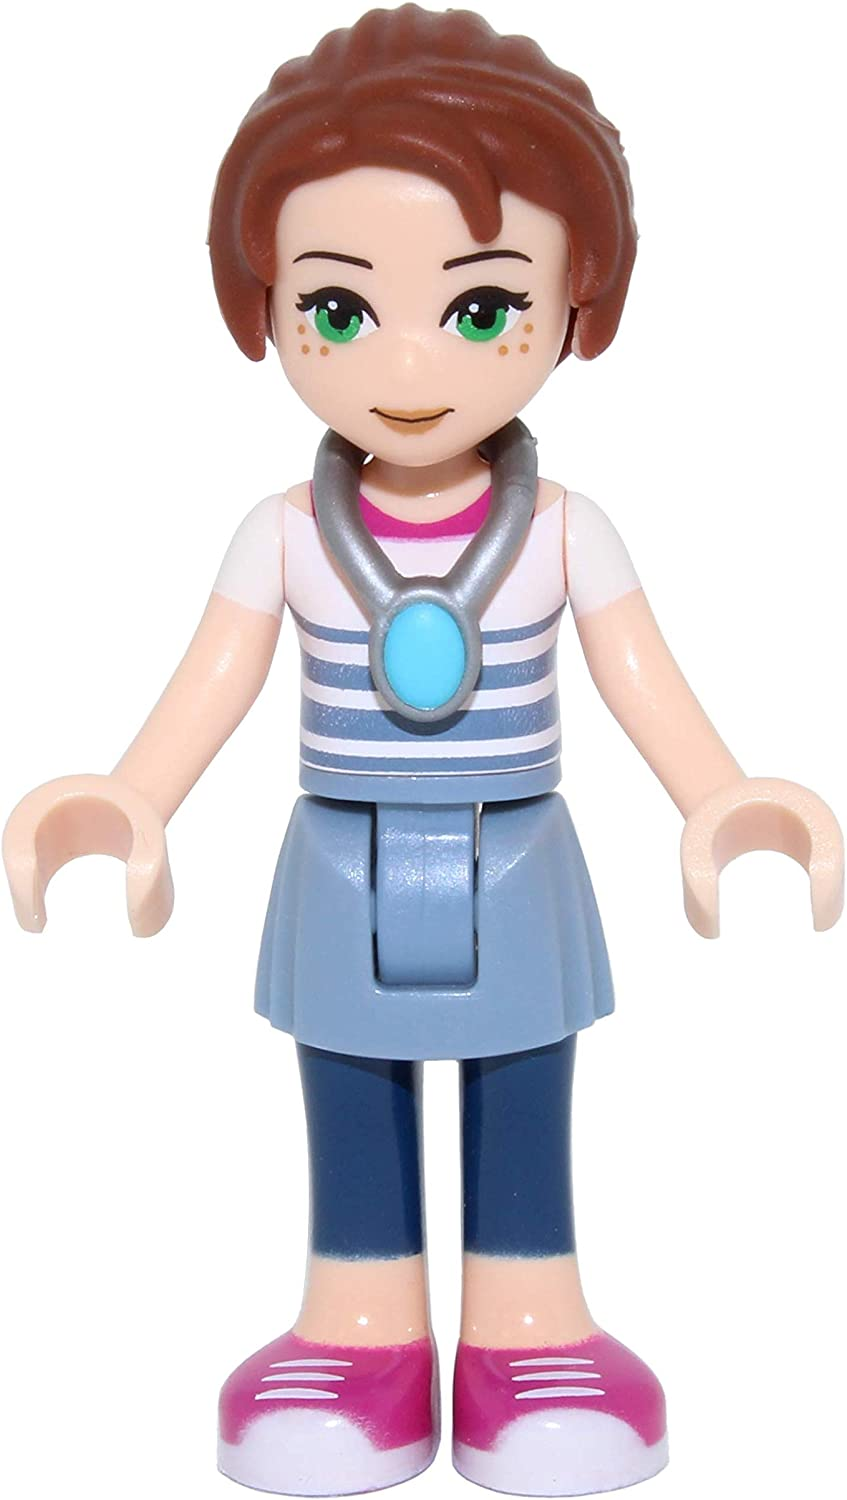 LEGO Elves: Emily Jones with Sand Blue Skirt and Long Blue Leggings Minifigure